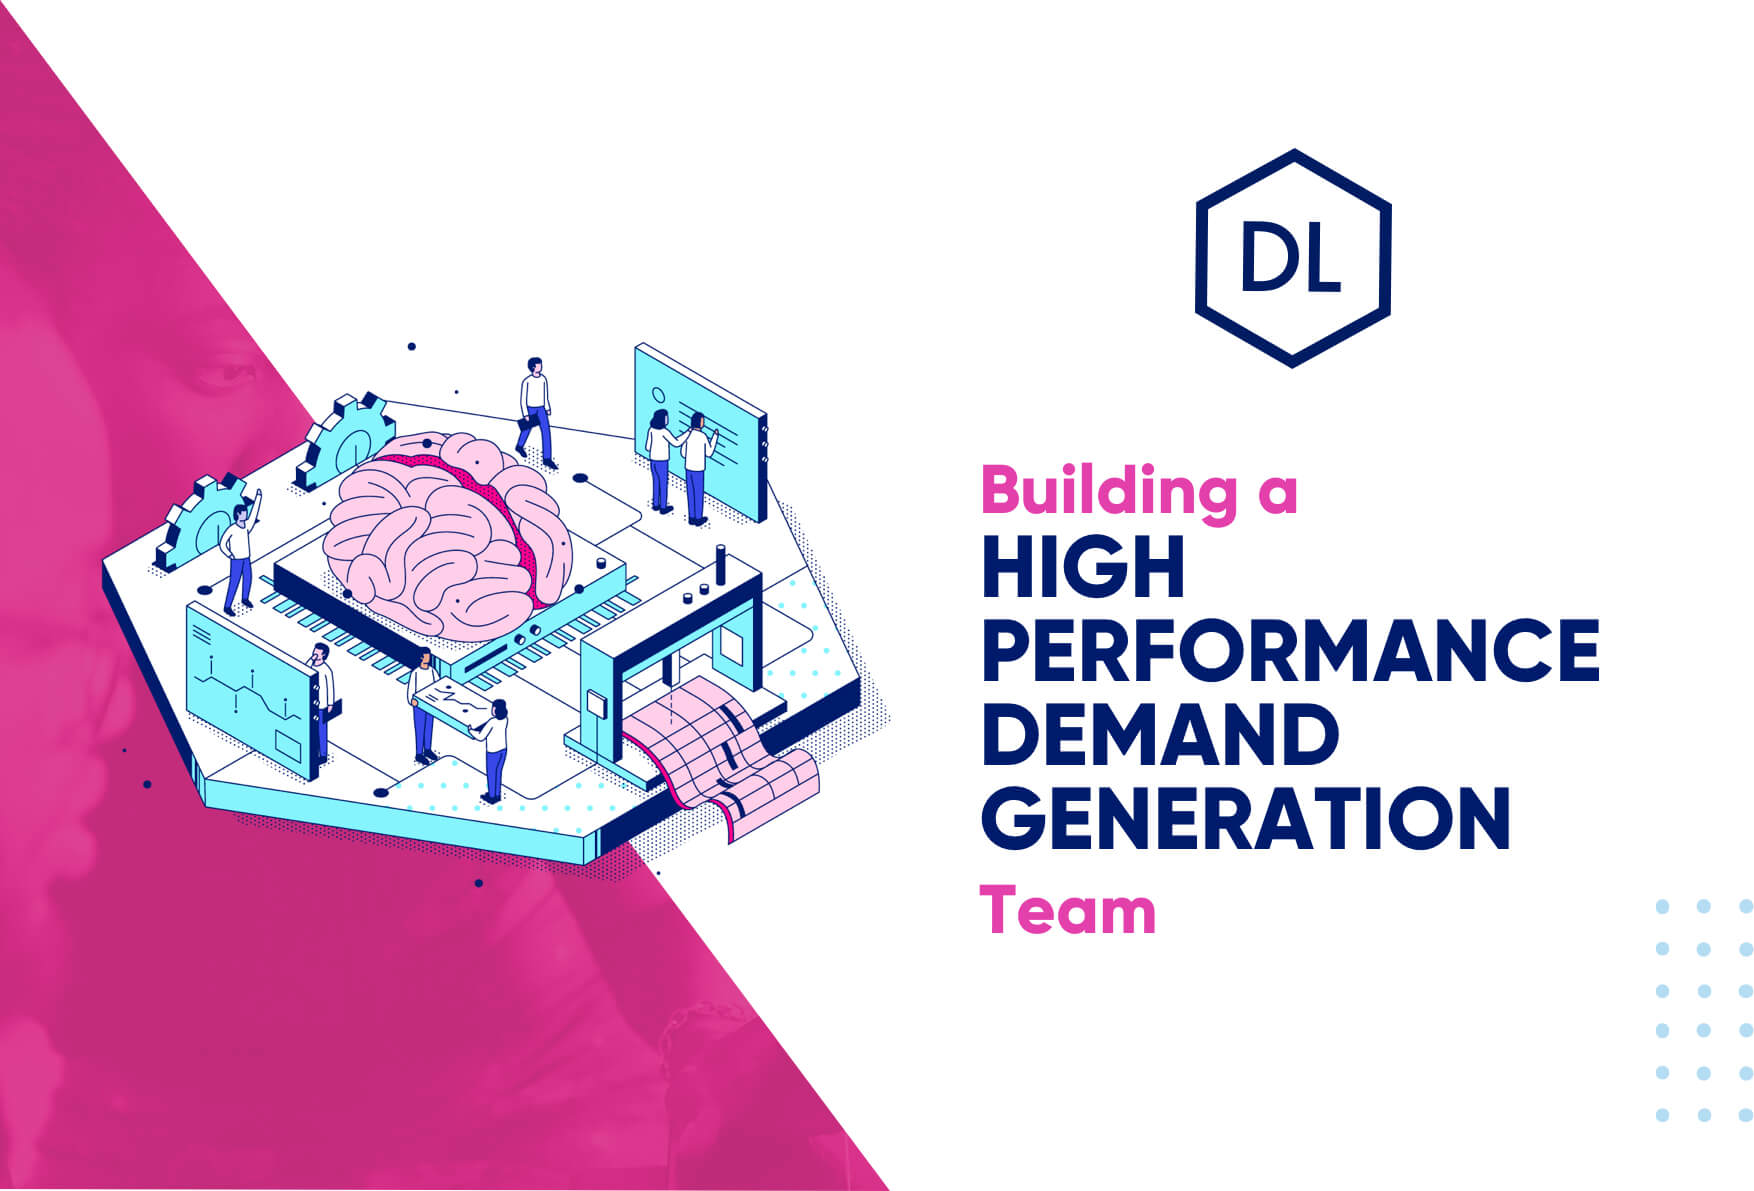 Building a High Performance Demand Generation Team